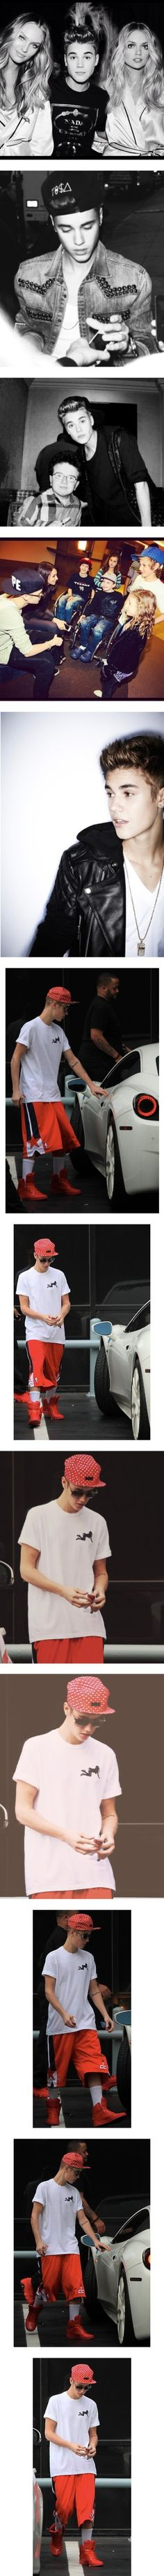 """""""Justin Bieber pics #173"""" by coolcat2608 ❤ liked on Polyvore"""